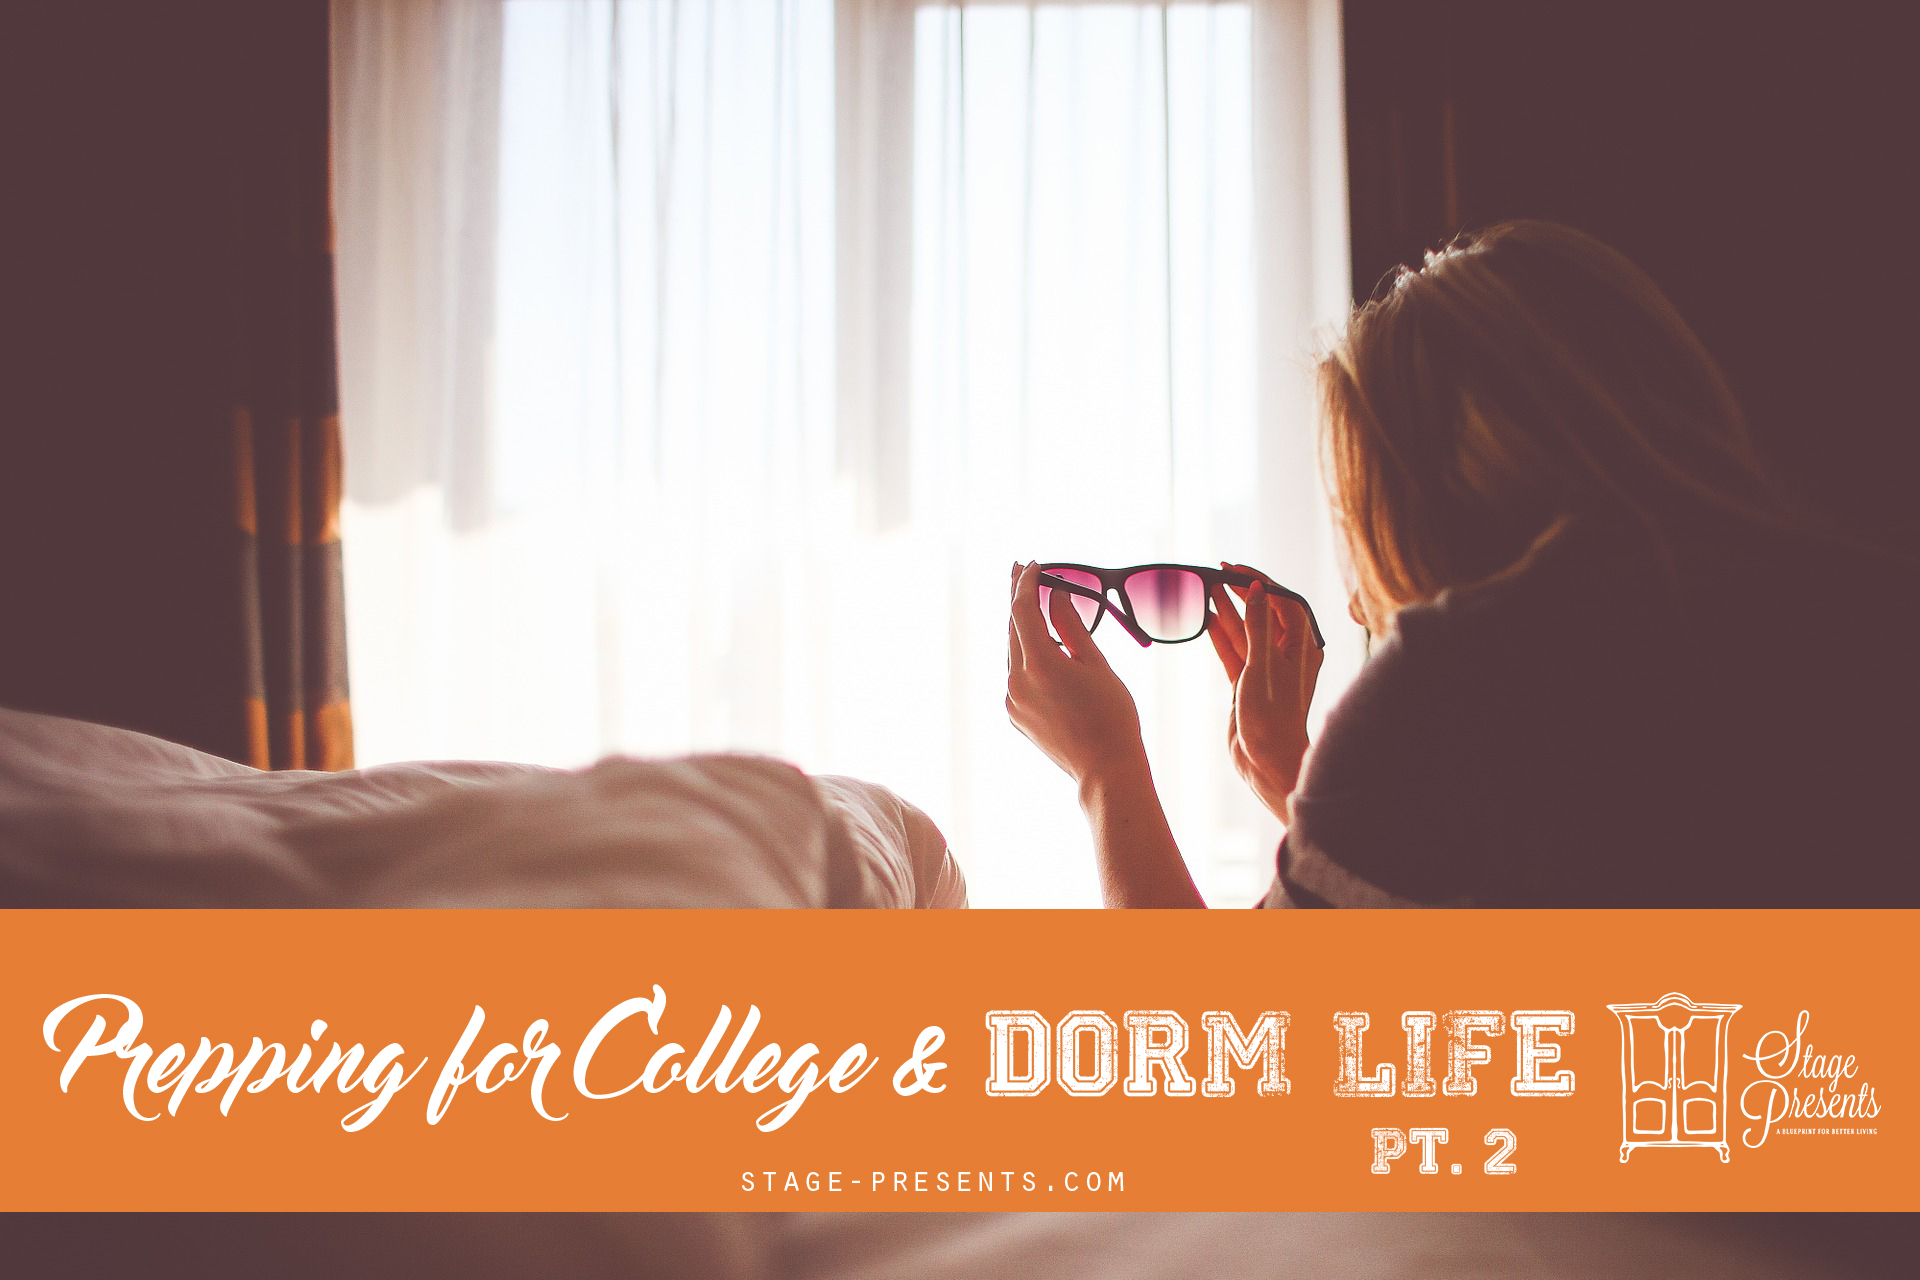 Prepping for College and Dorm Life - Washable Linen Must Haves - stage-presents.com